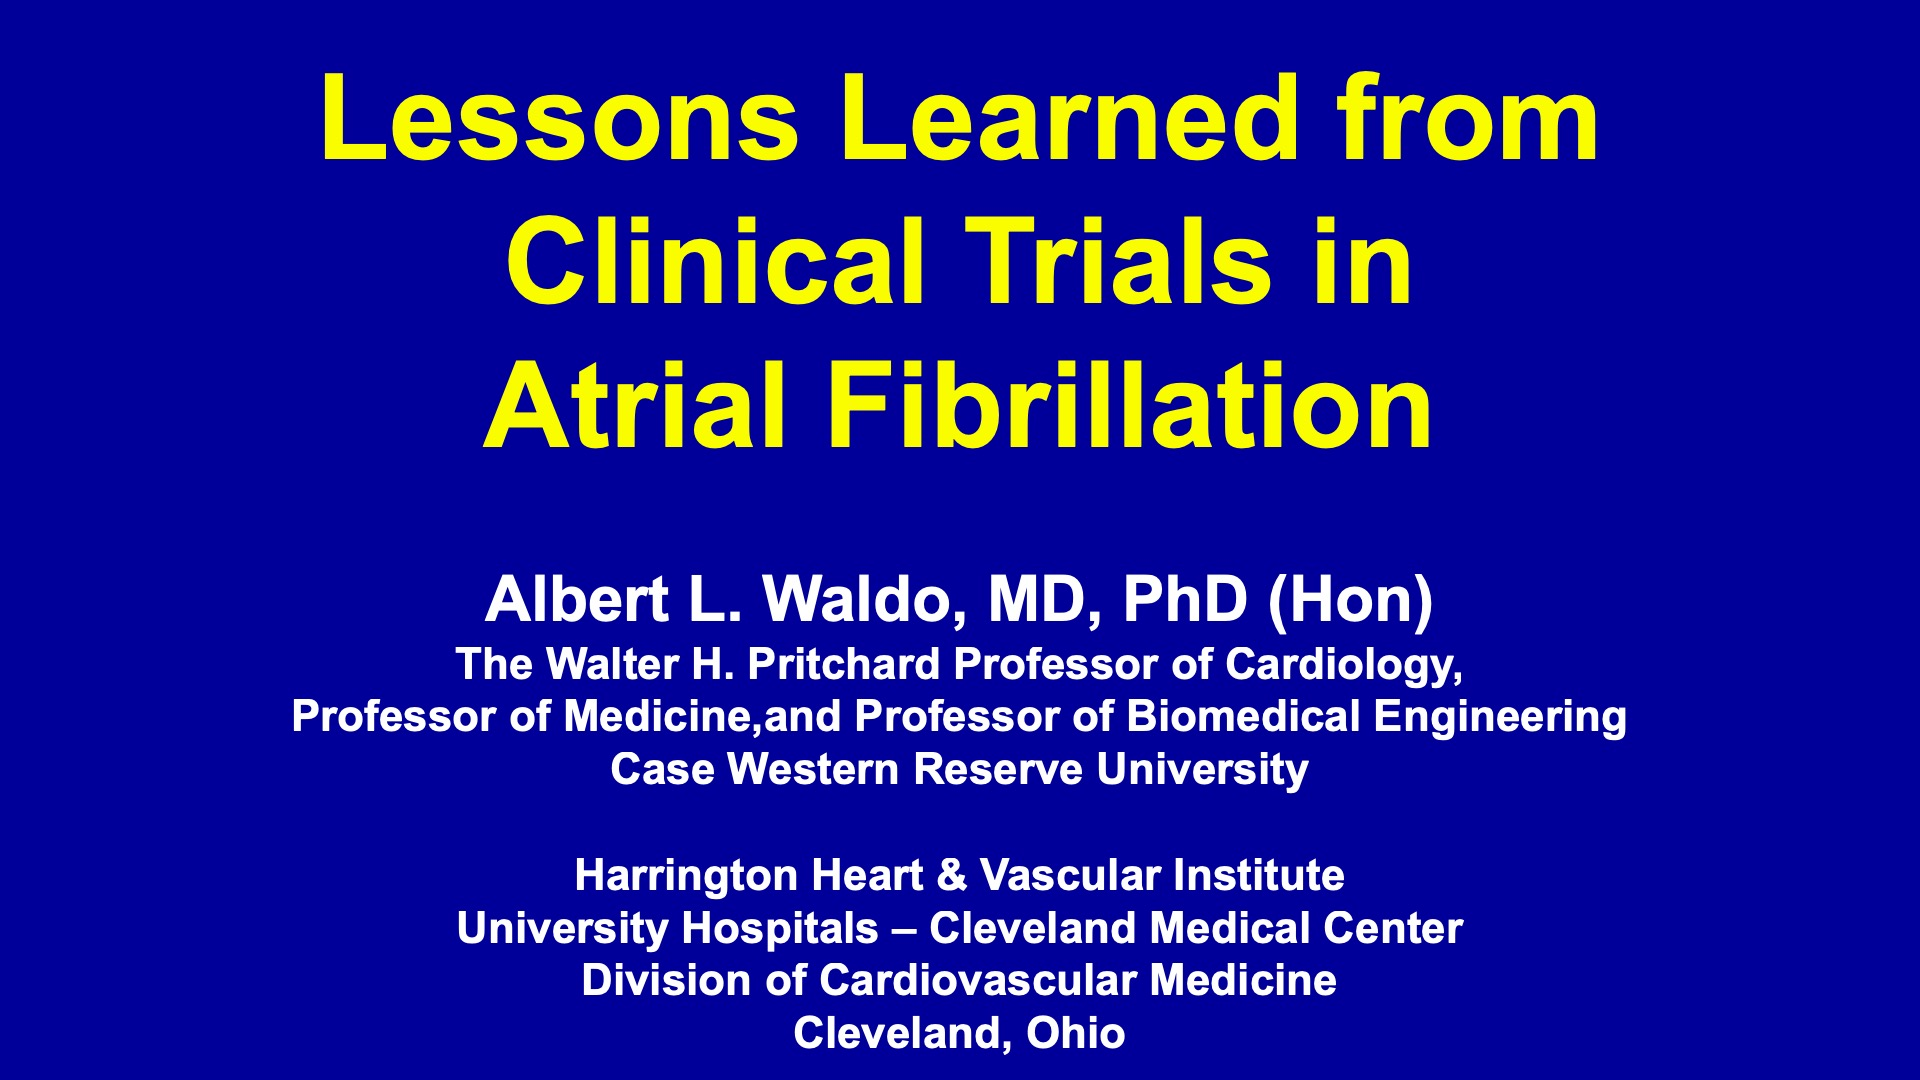 Lessons Learned from Clinical Trials in Atrial Fibrillation